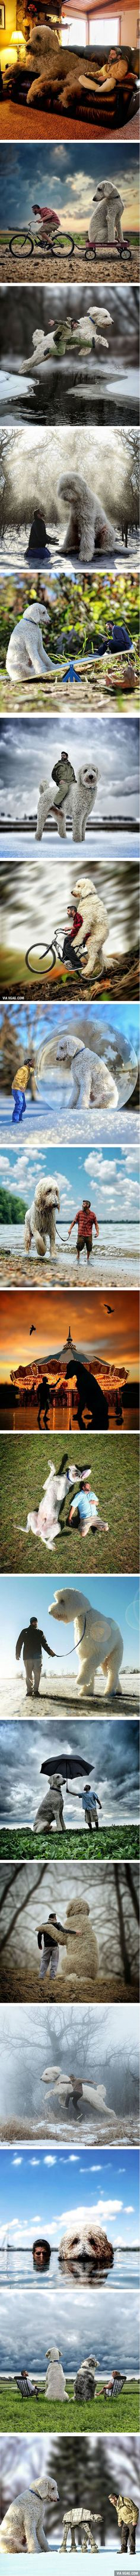 Photographer Photoshops His Dog Into A Giant For Joining His adventures